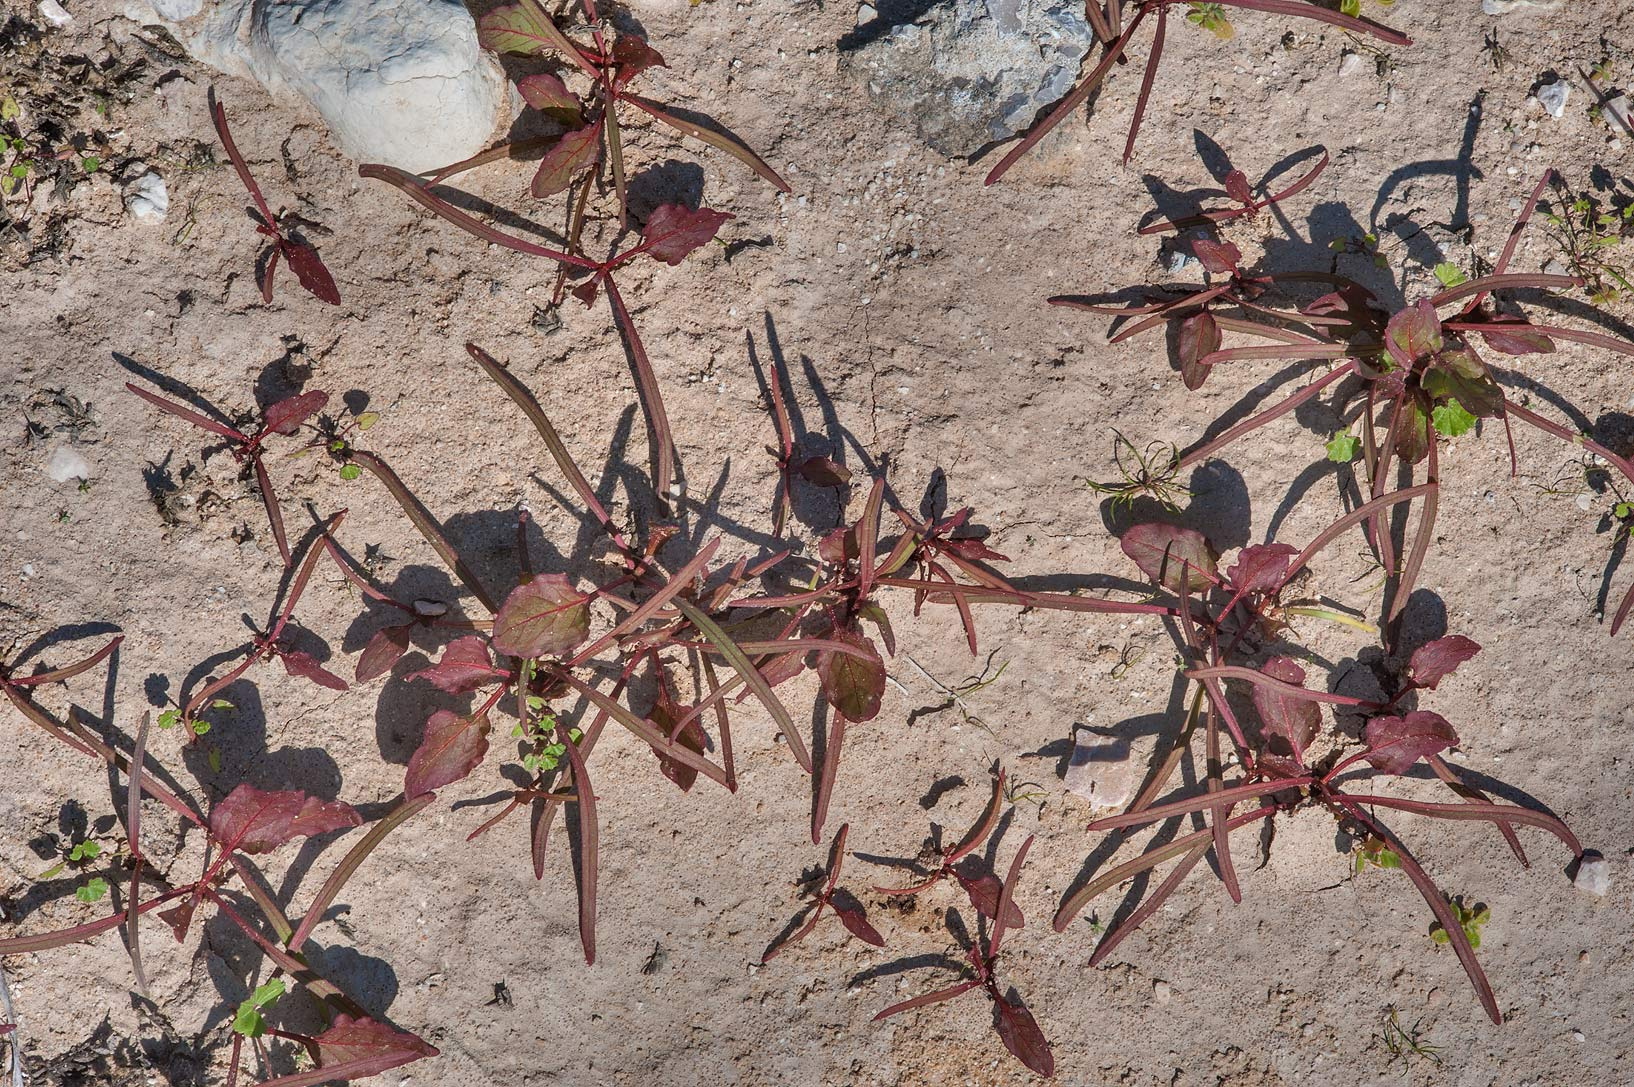 Seedlings of prickly dock (Emex spinosa) in roadside depression of Dukhan Highway. Qatar